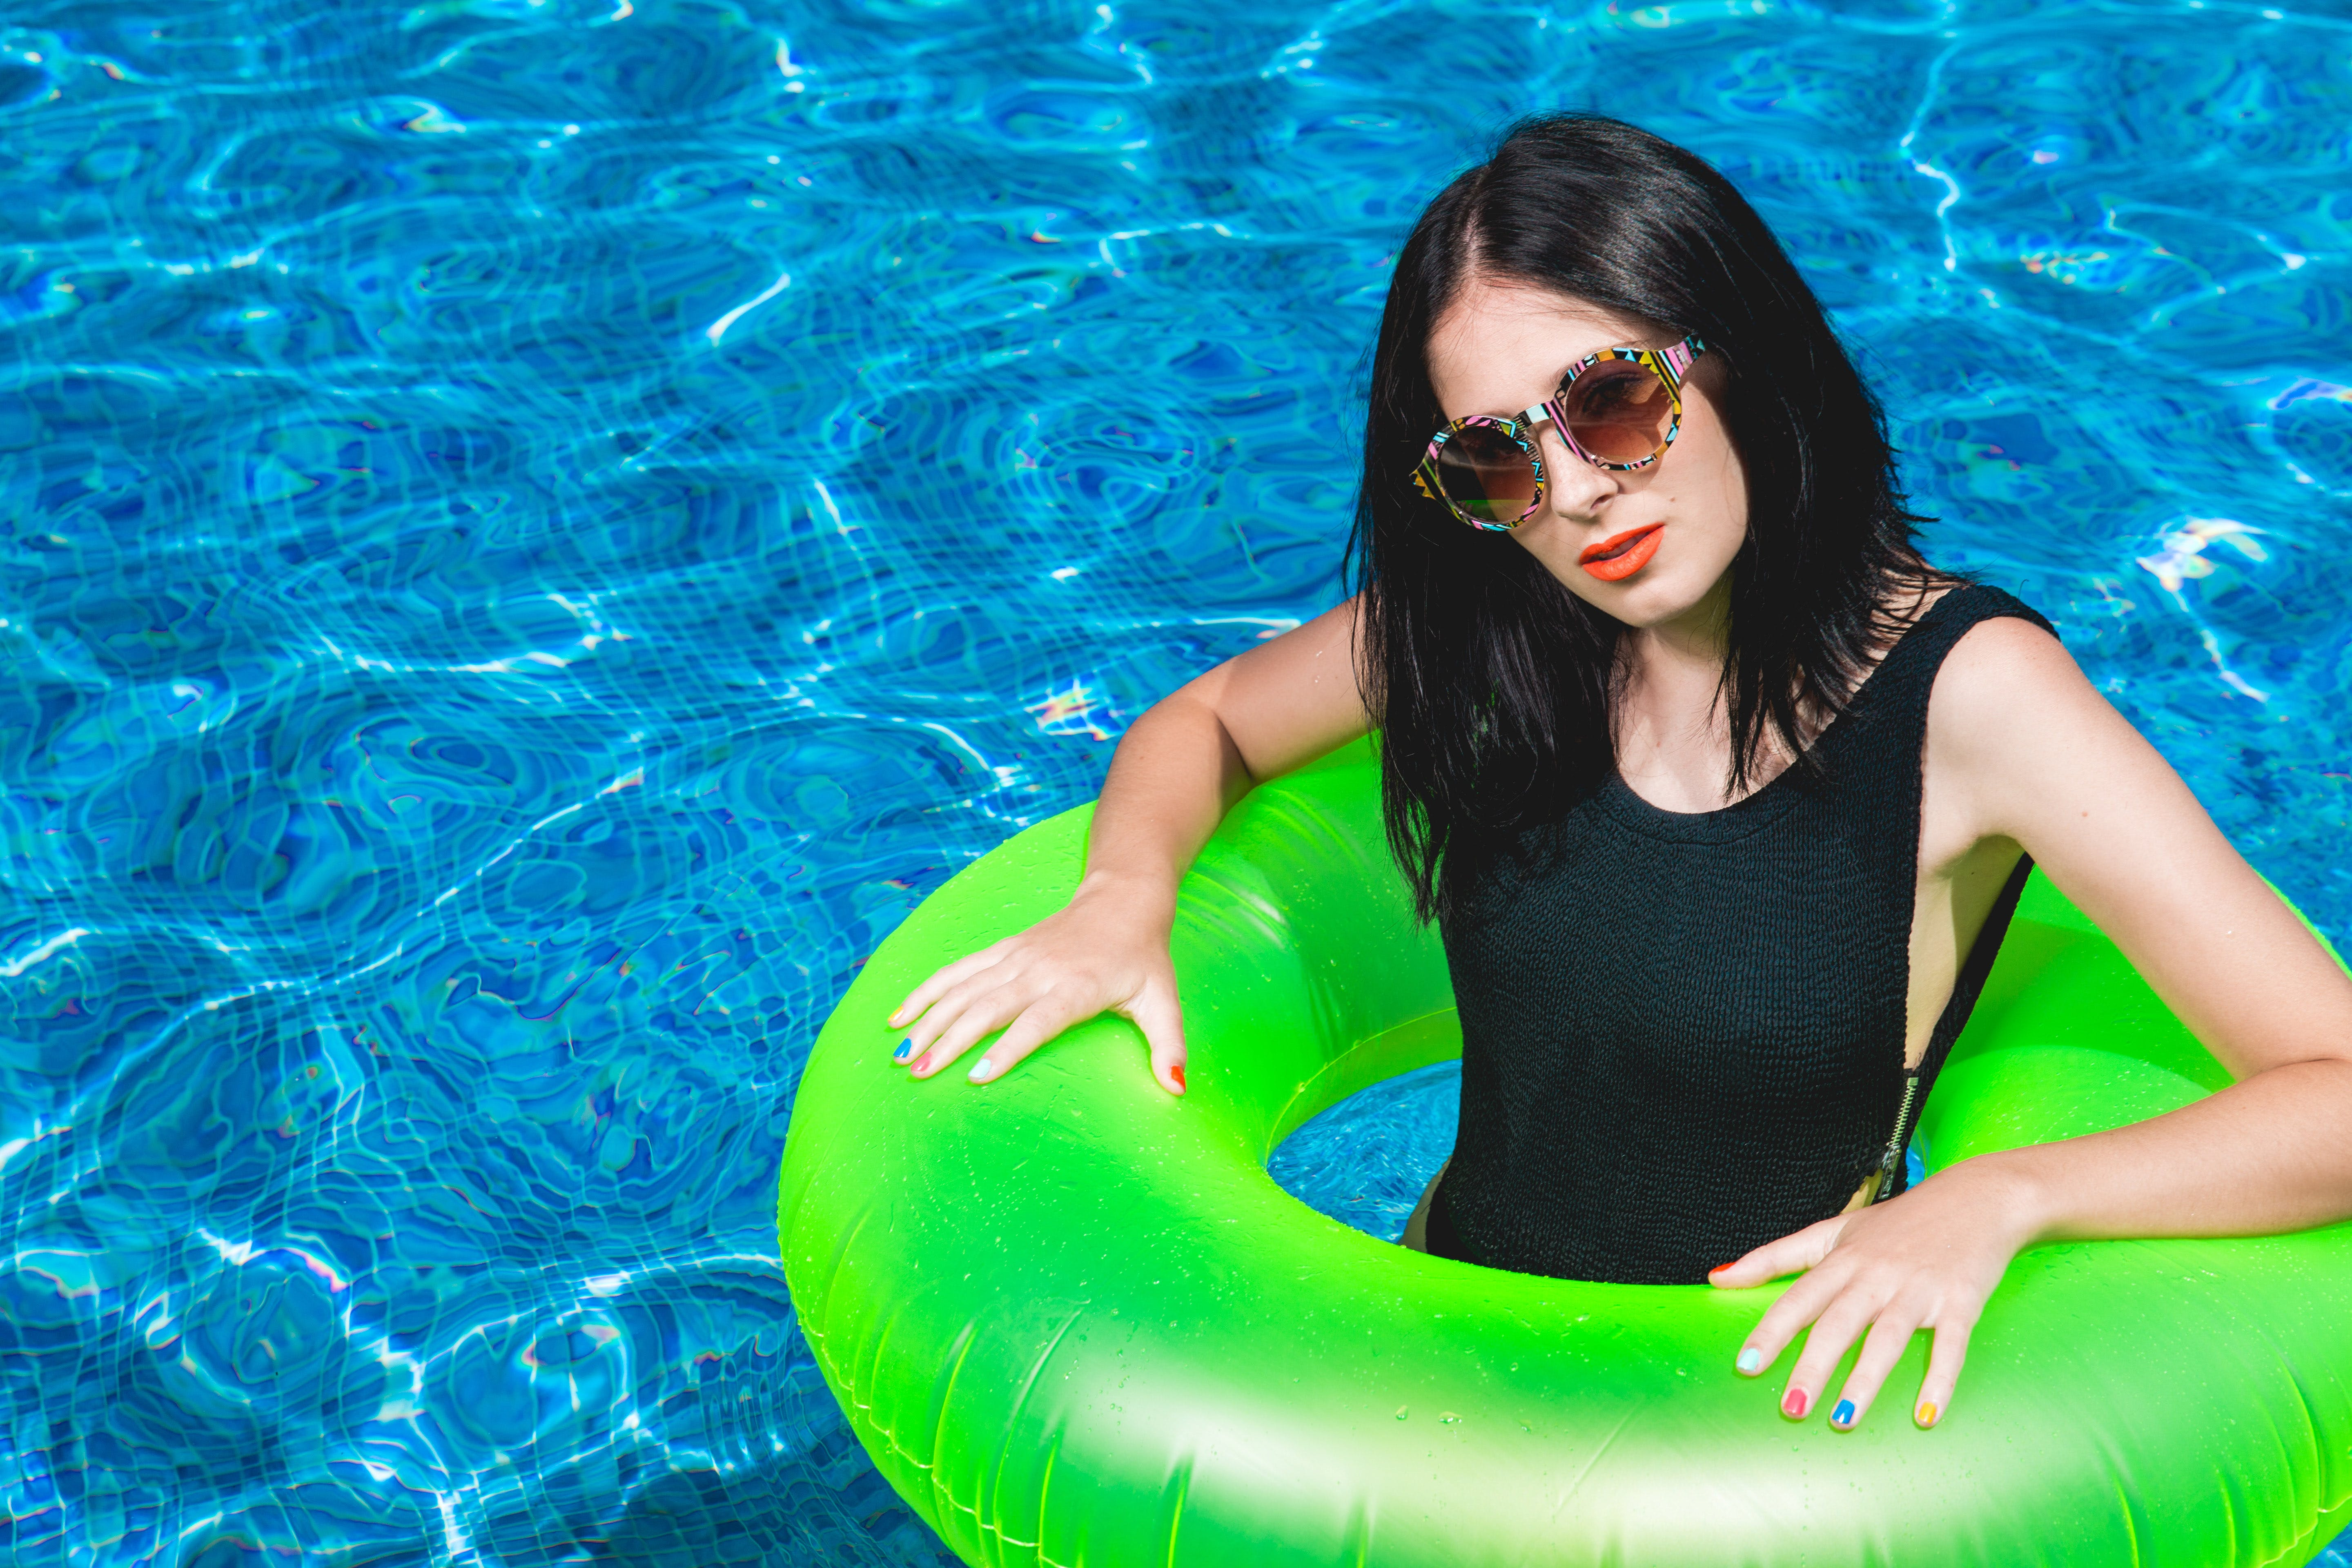 Woman in Green Pool Floater